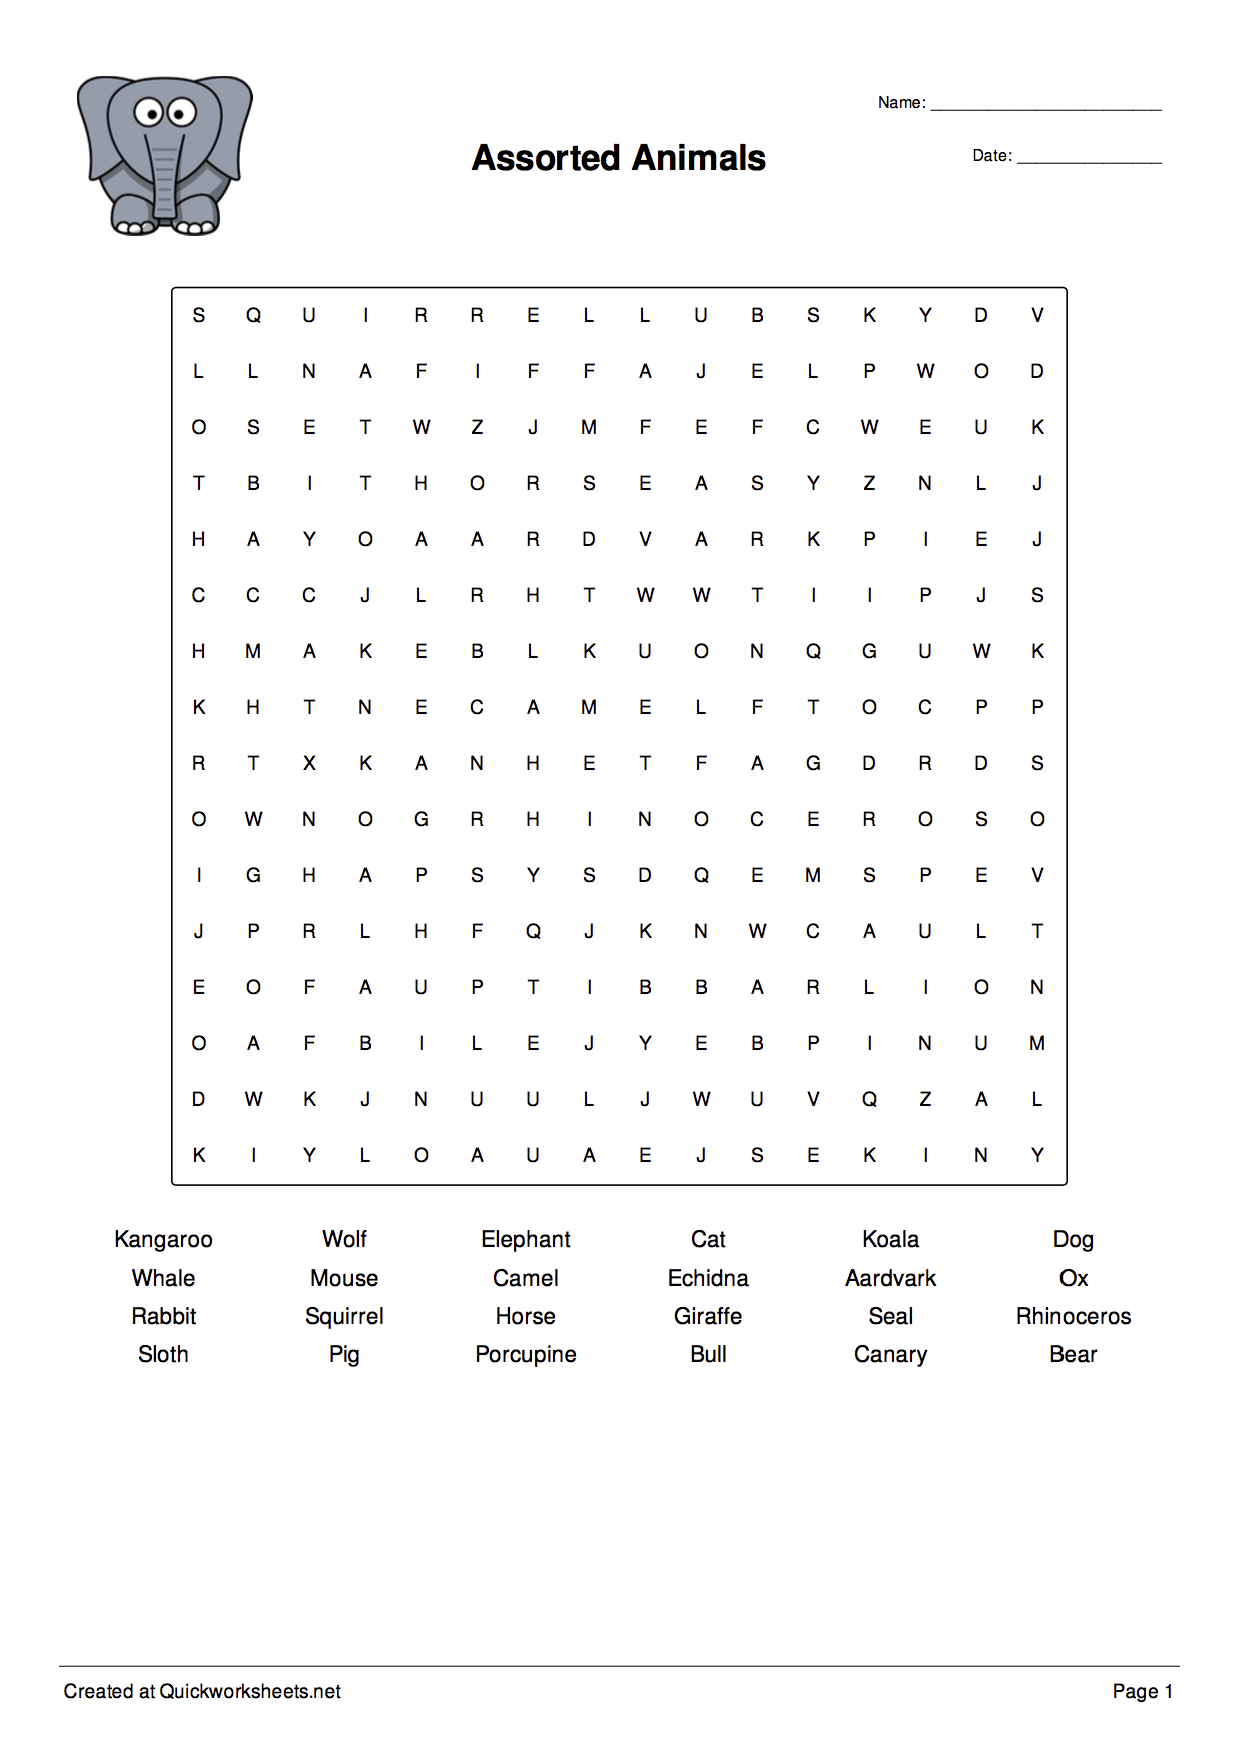 Word Scramble Wordsearch Crossword